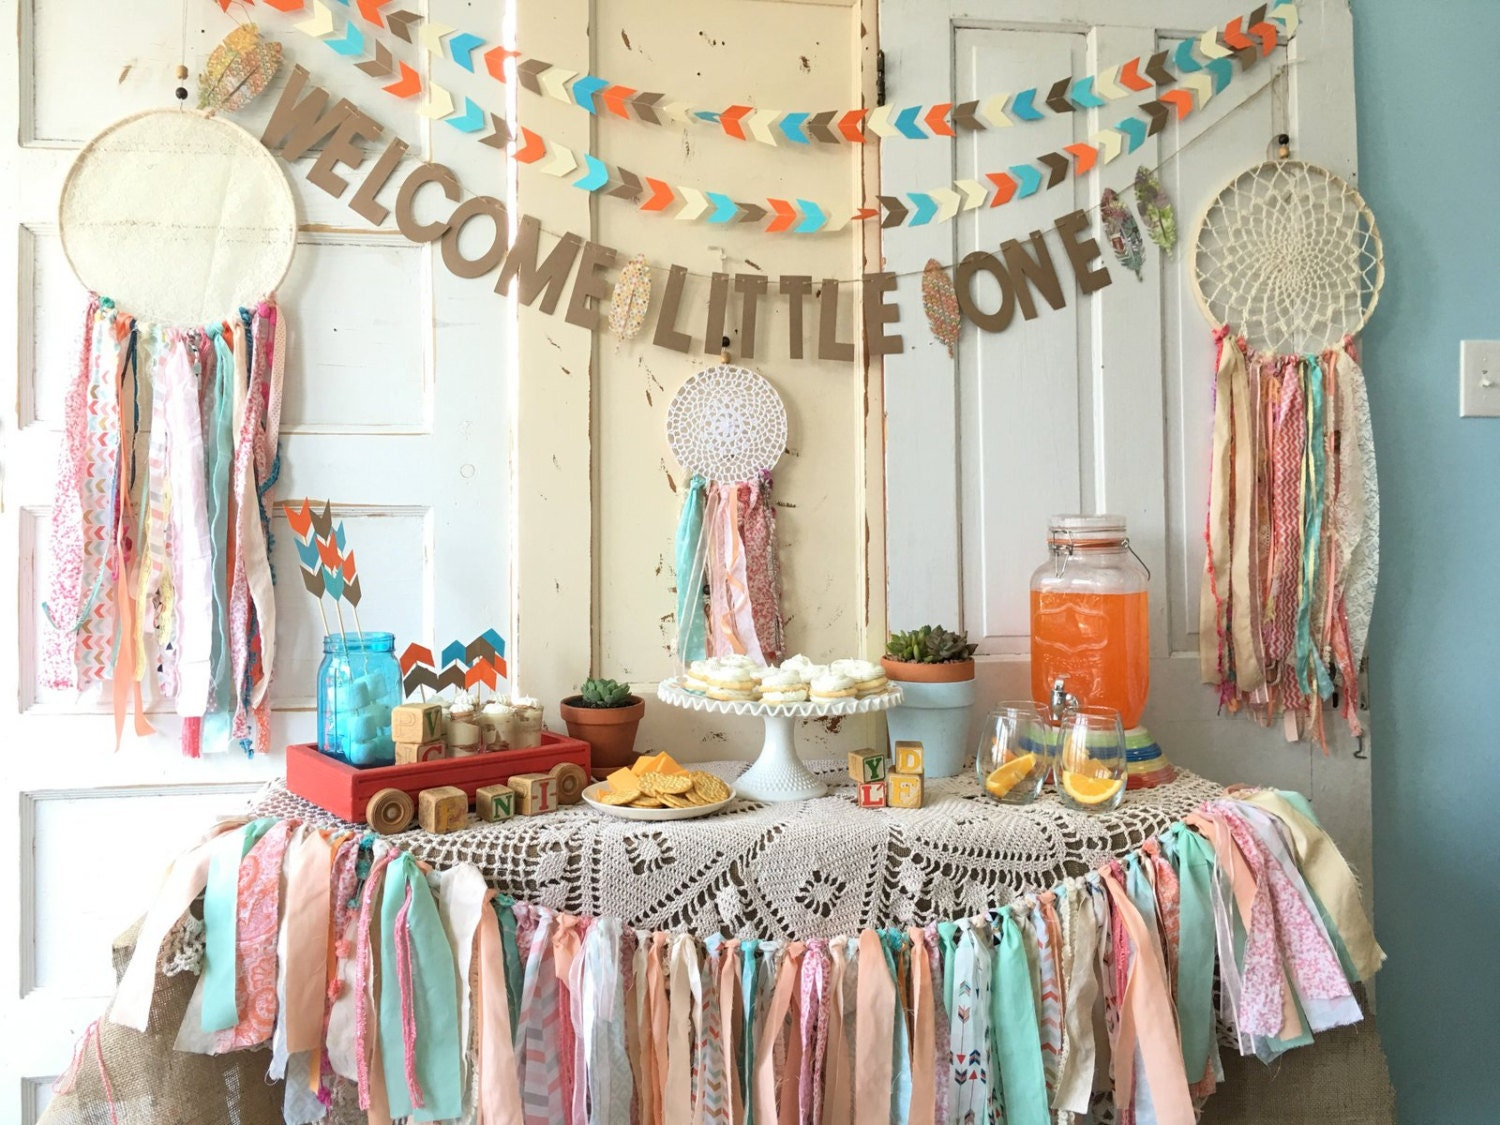 wel e little one banner for baby shower boho modern baby